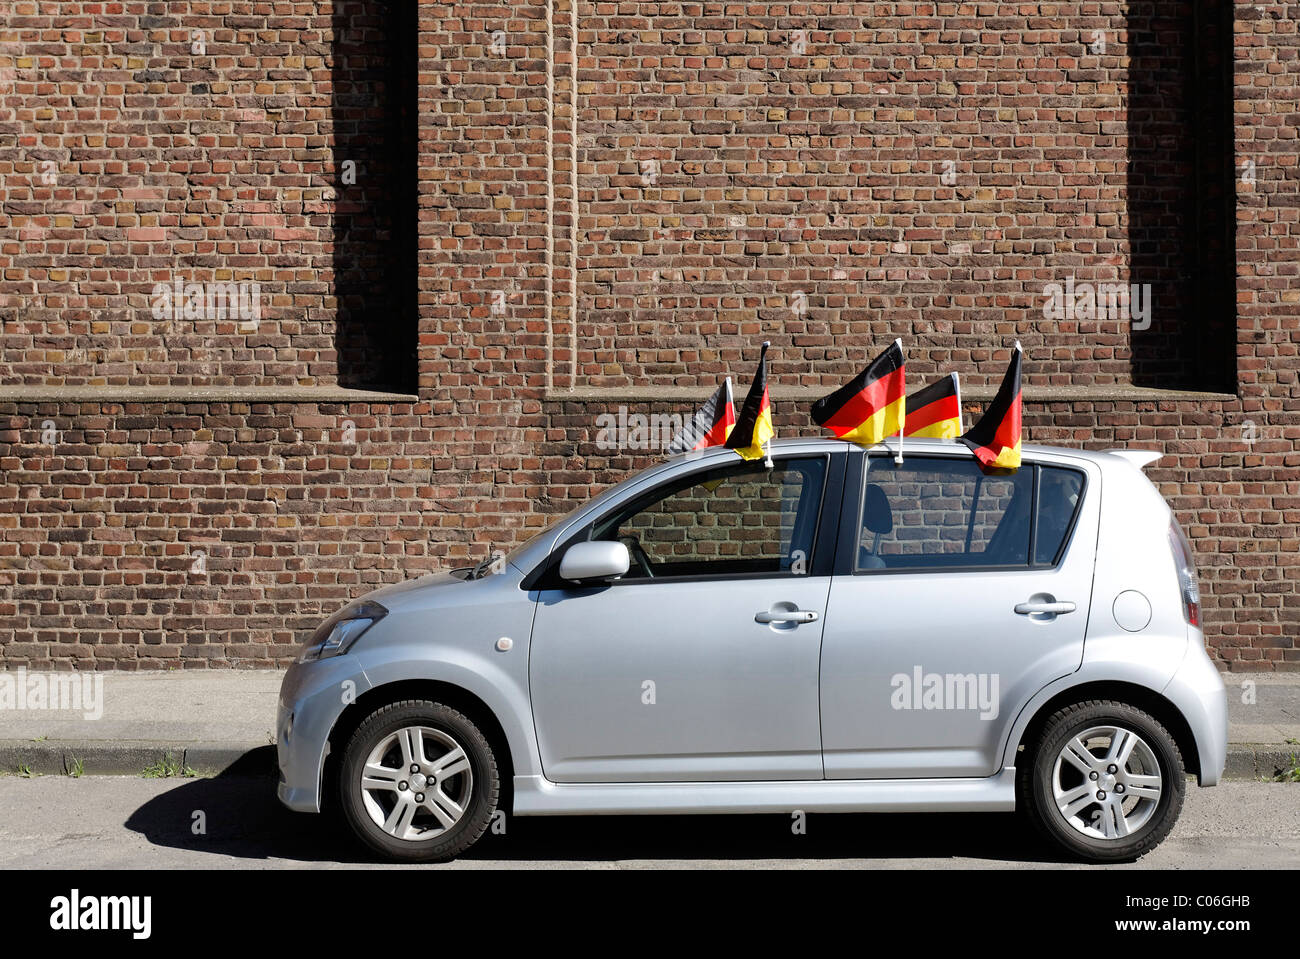 Small car decorated with five Germany flags, World Cup, Krefeld-Uerdingen, North Rhine-Westphalia, Germany, Europe - Stock Image